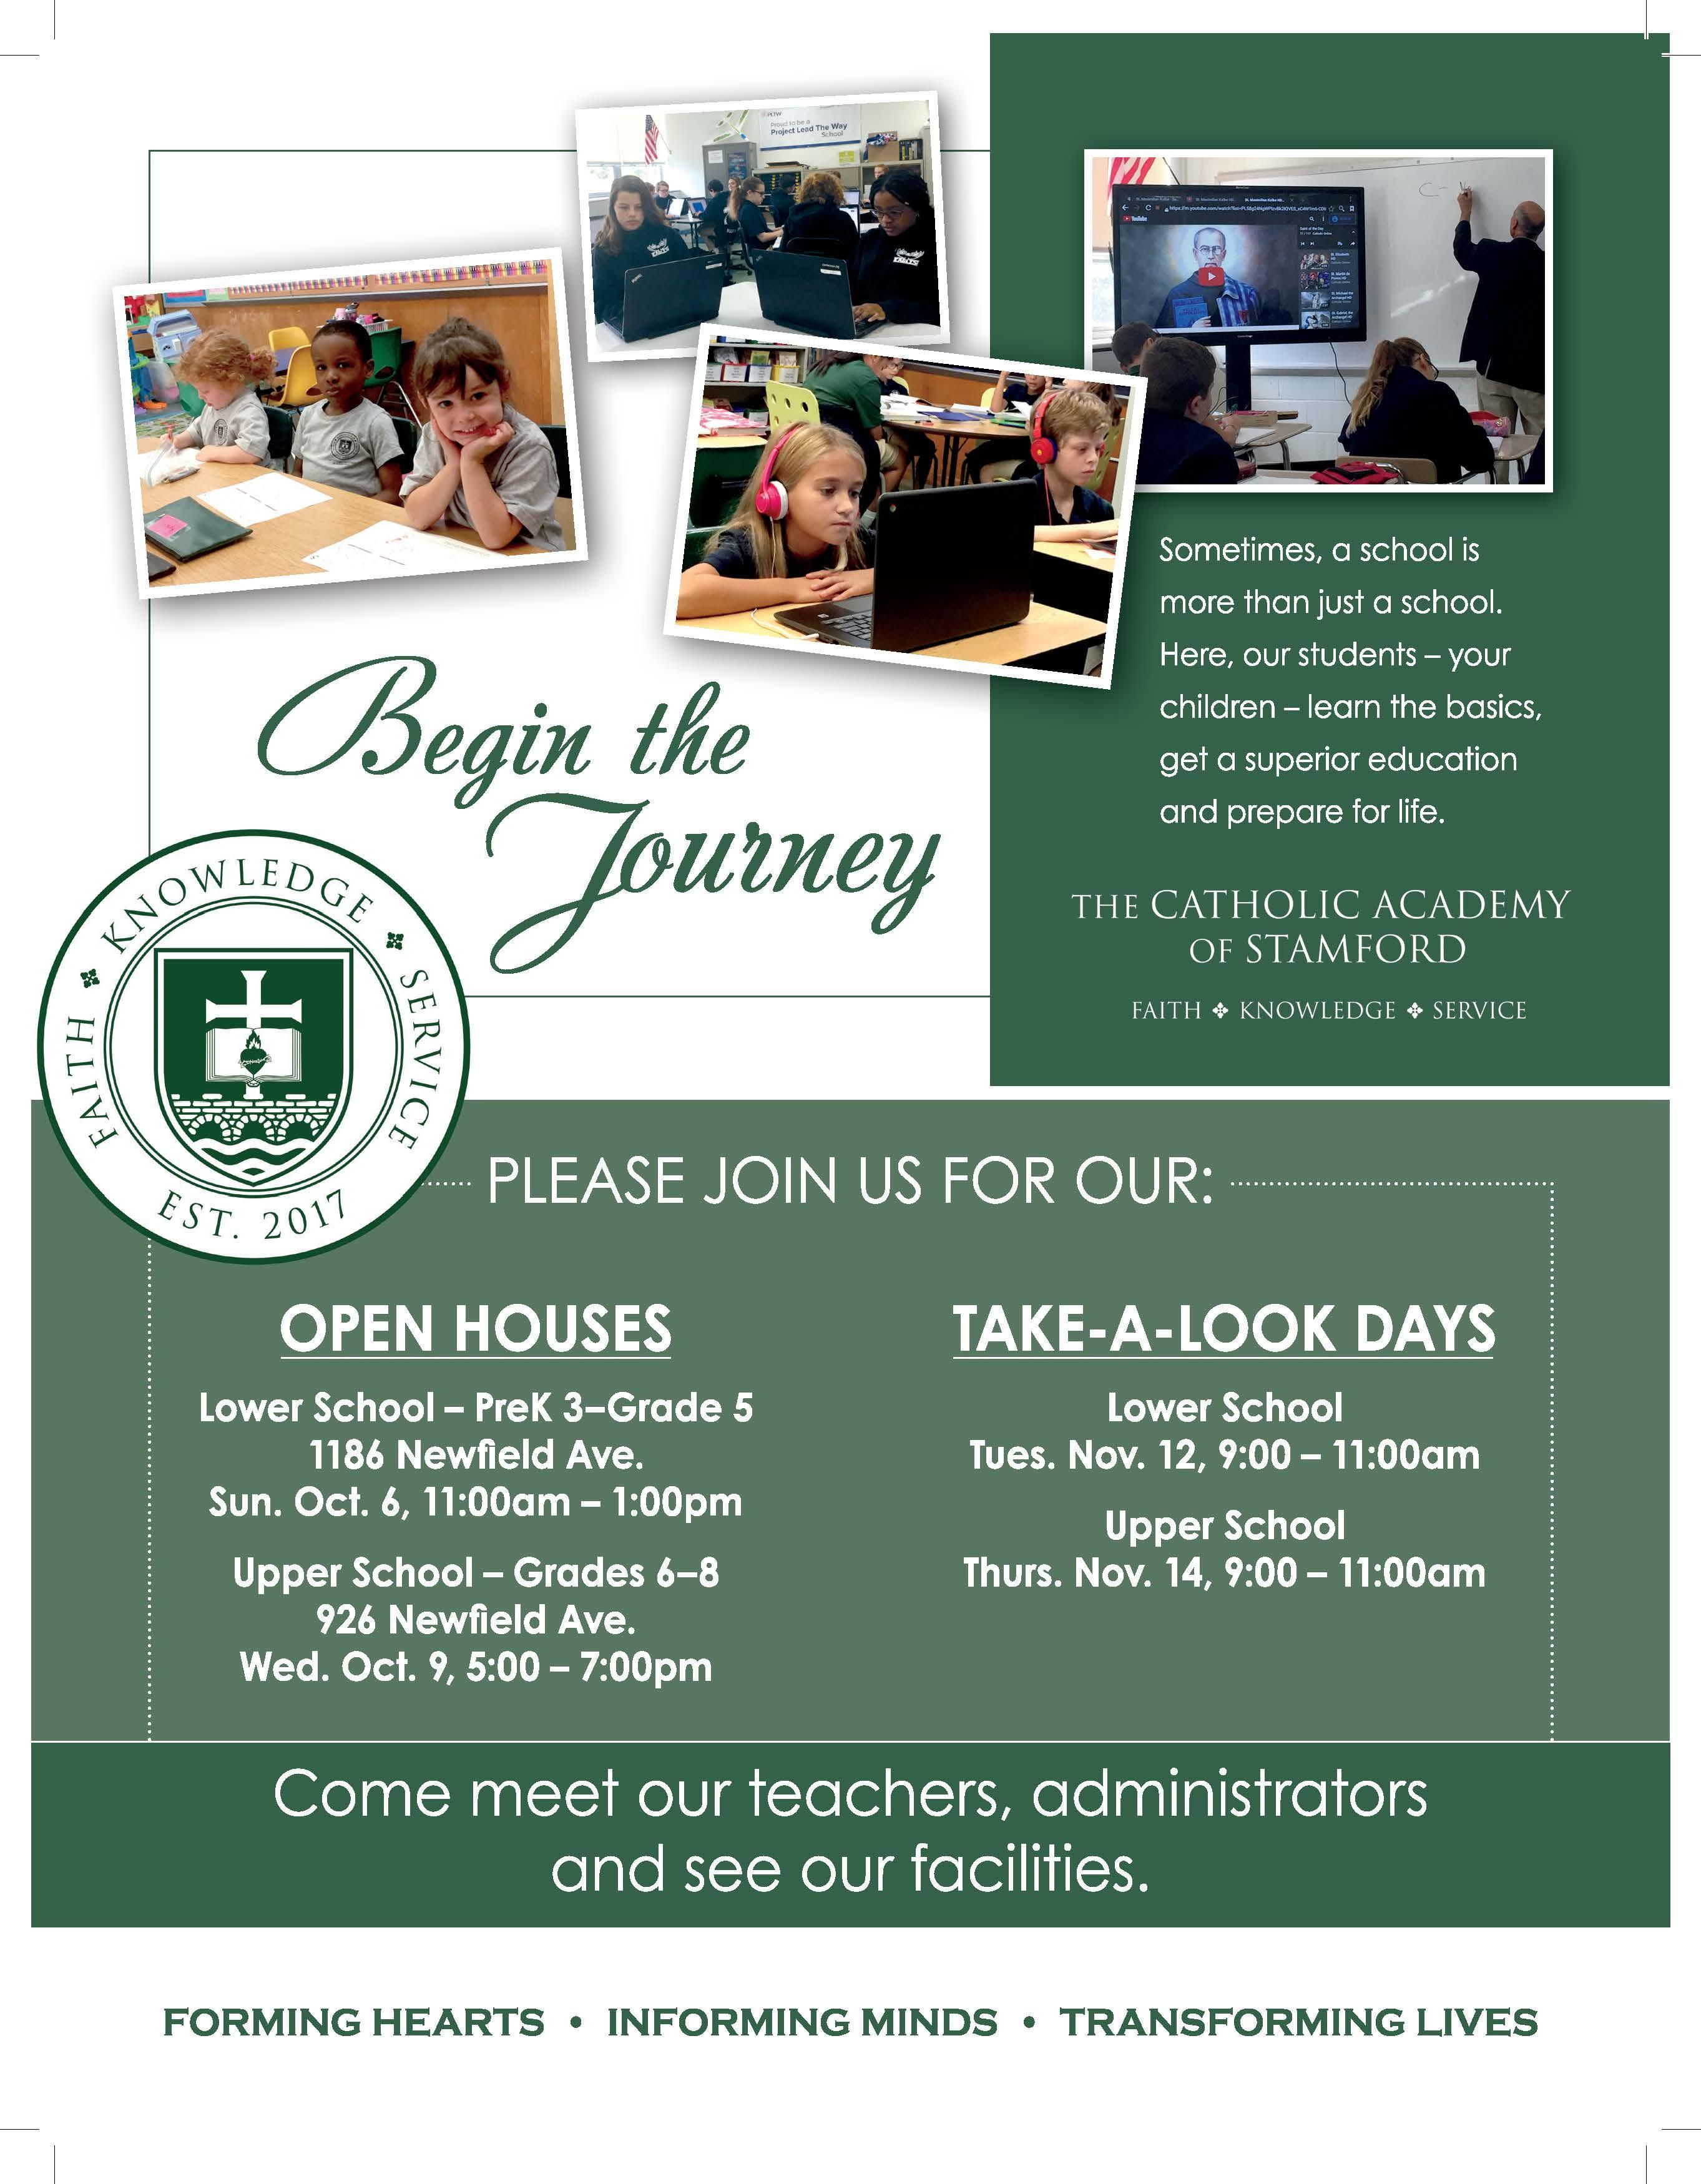 Fall Open House and Take-a-Look Days Coming Soon!